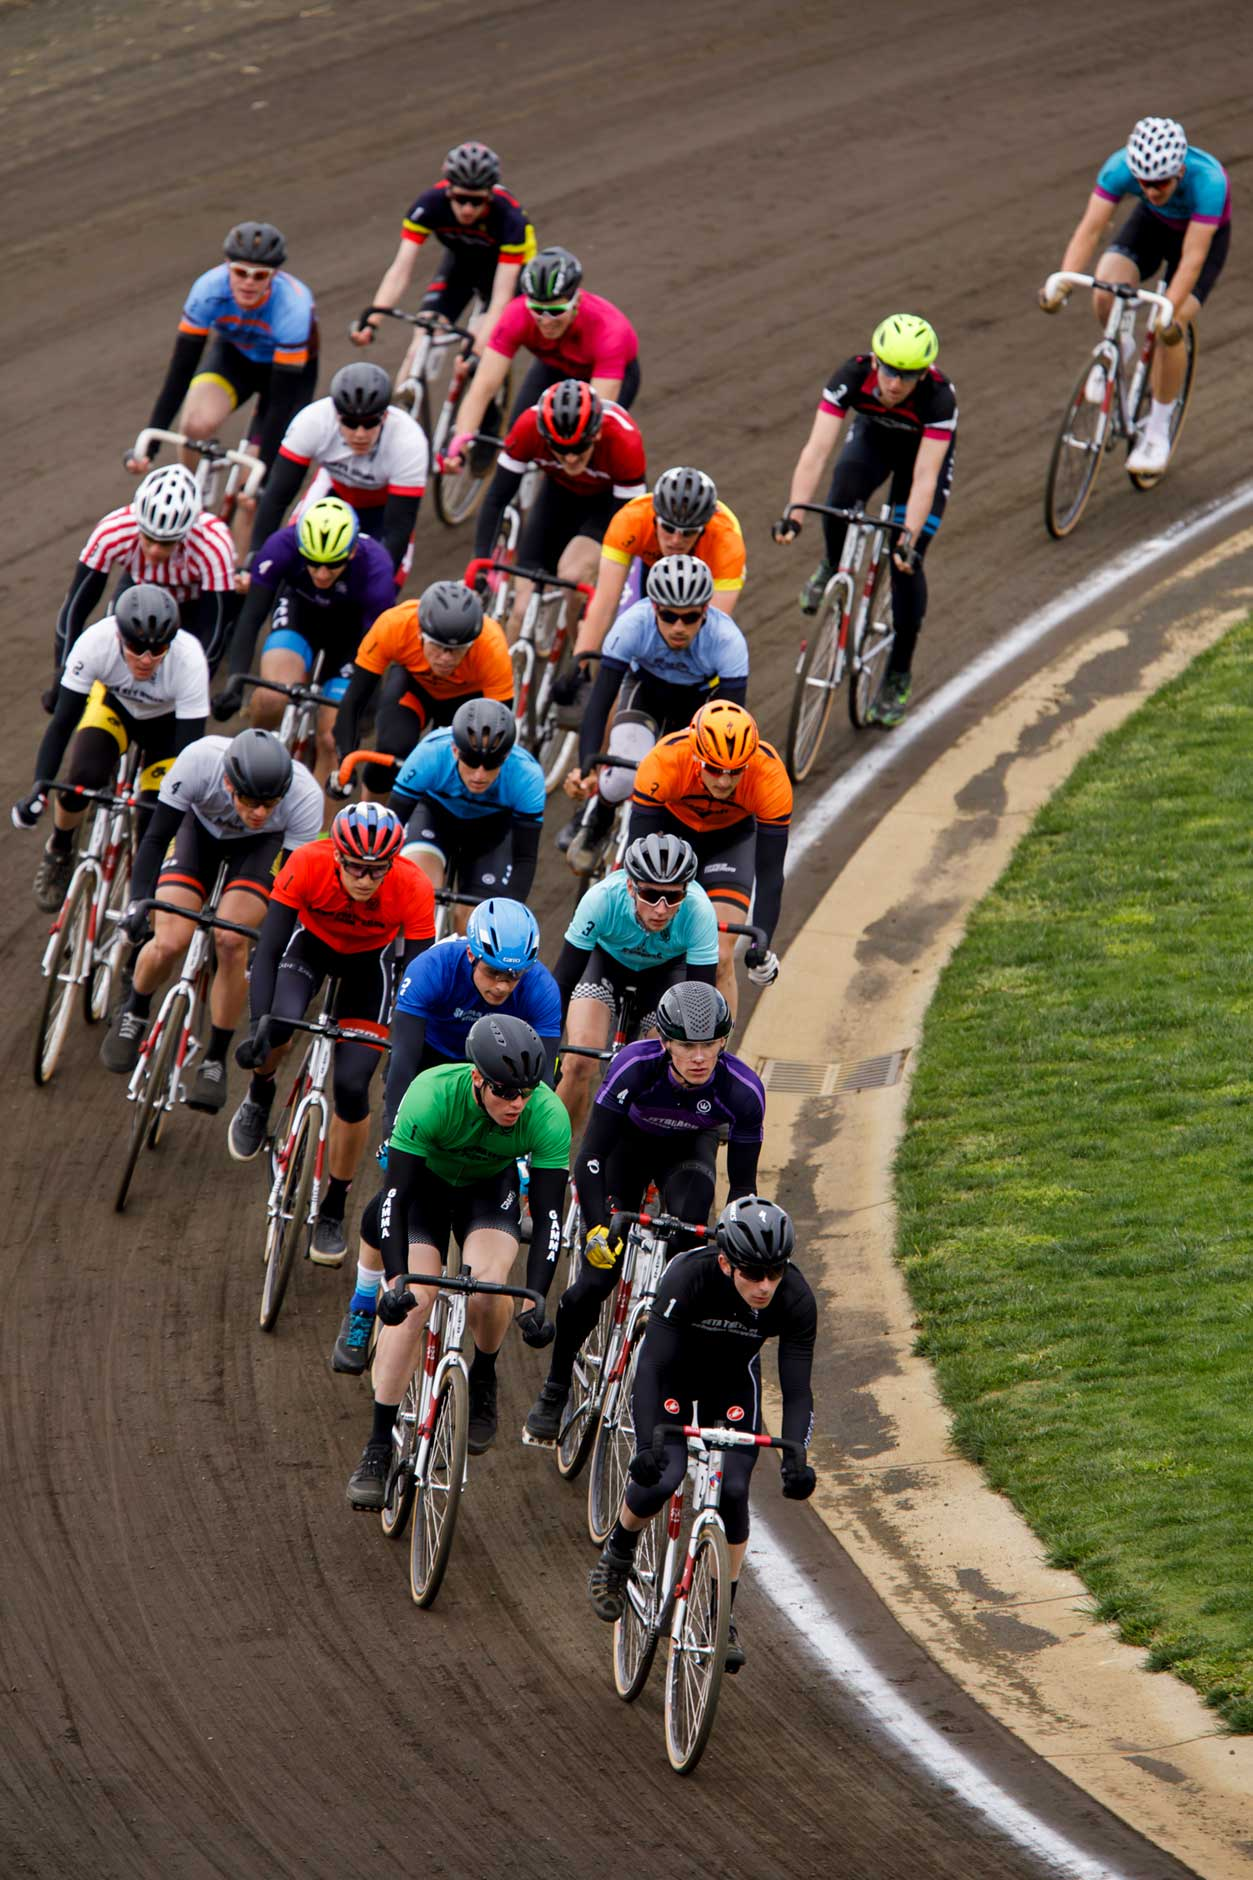 Riders race through turn four during the early laps of the Men's Little 500 at Bill Armstrong Stadium on Saturday, April 22, 2017. (James Brosher/IU Communications)